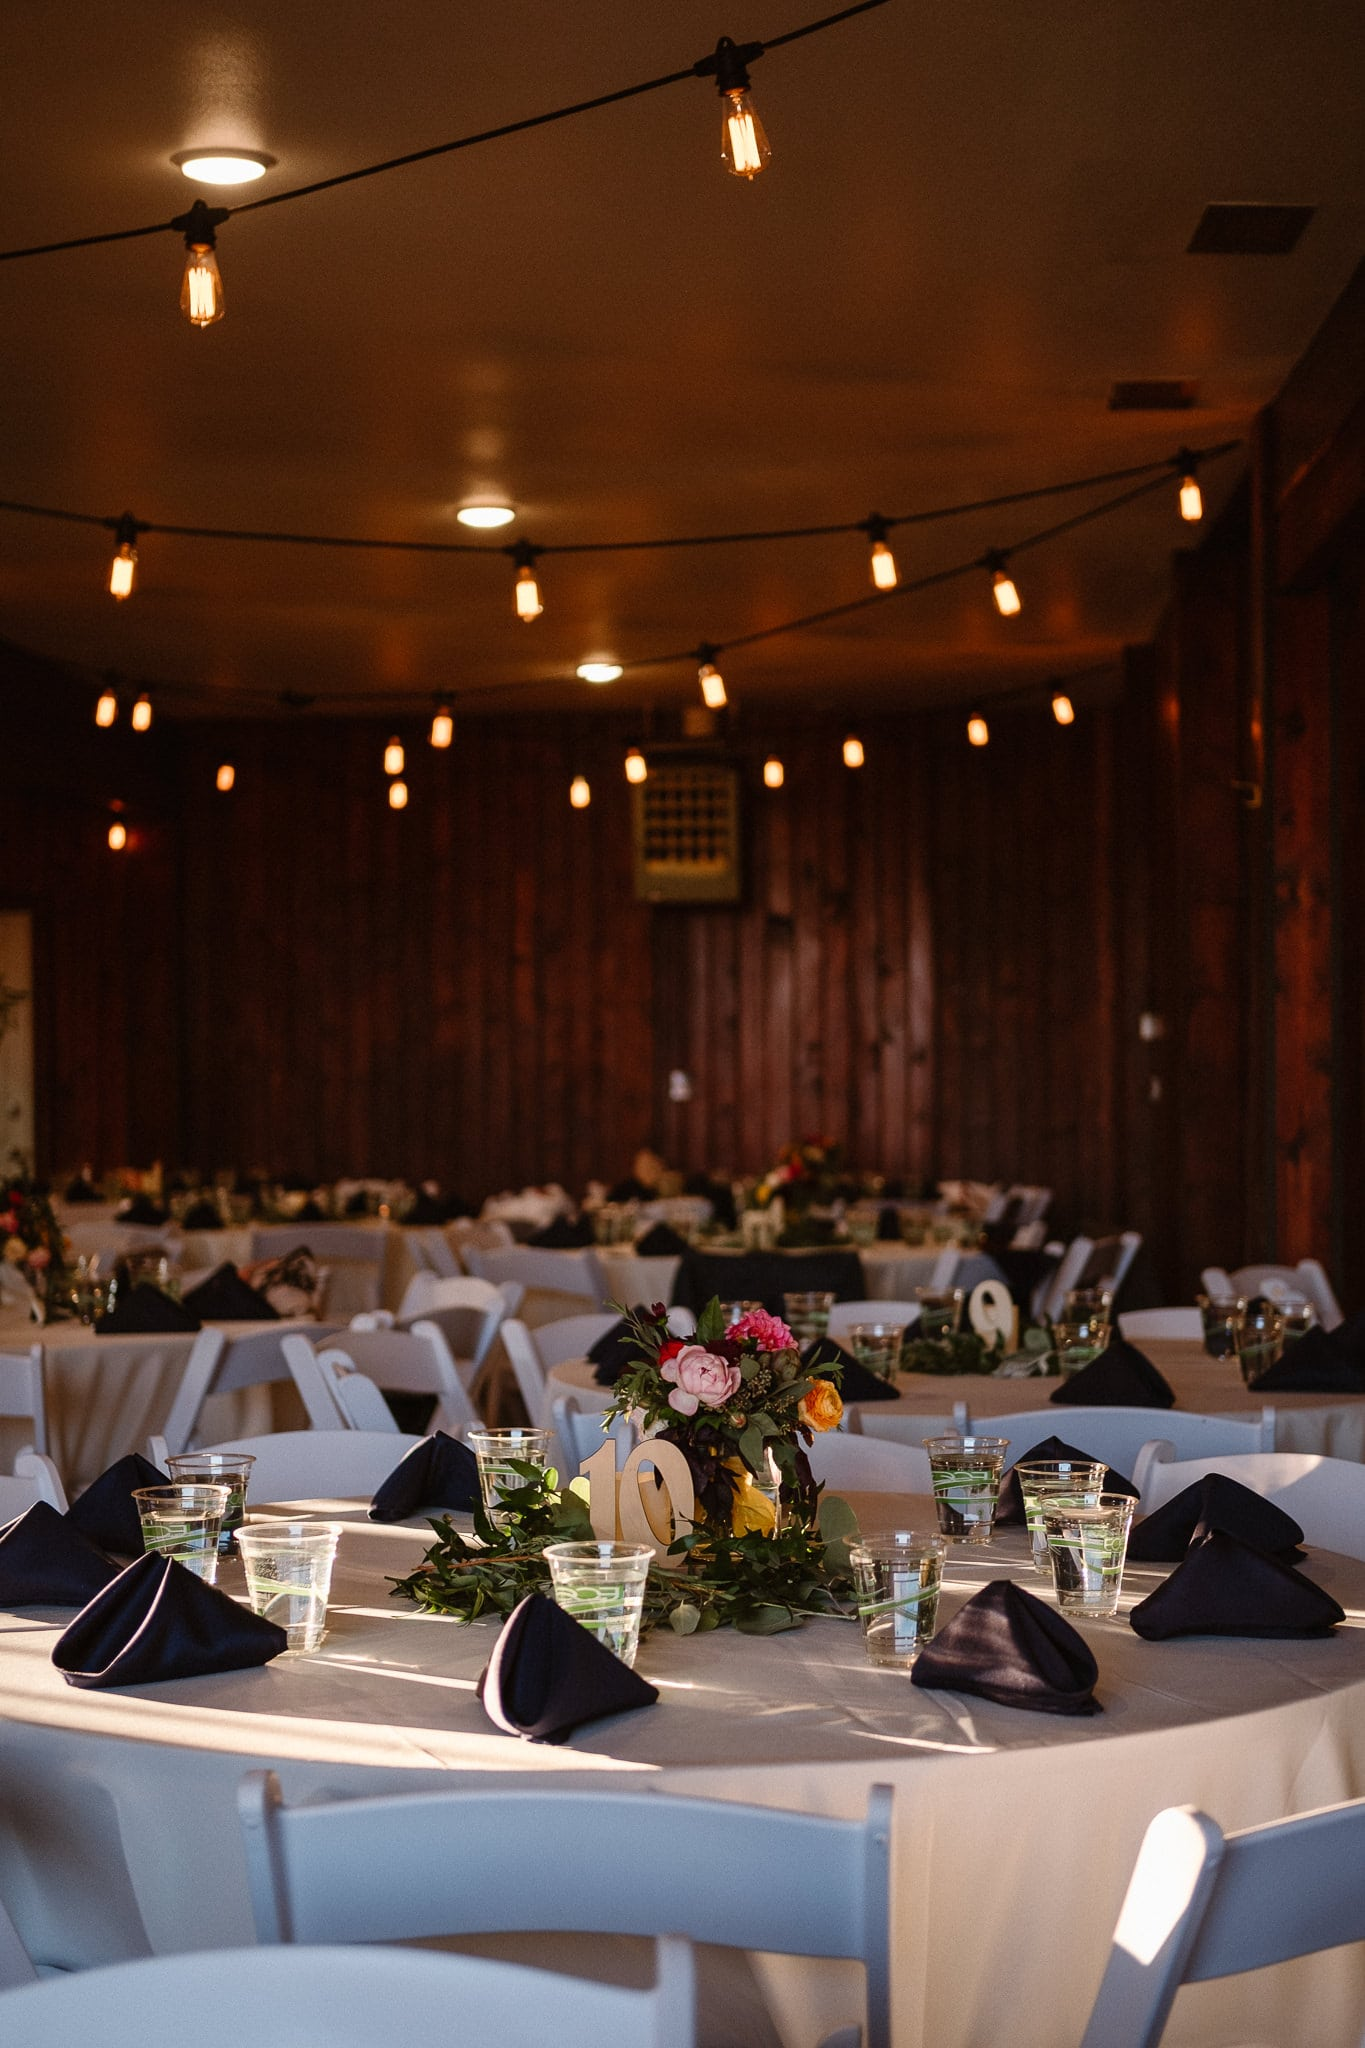 Steamboat Springs wedding photographer, La Joya Dulce wedding, Colorado ranch wedding venues, barn reception decor